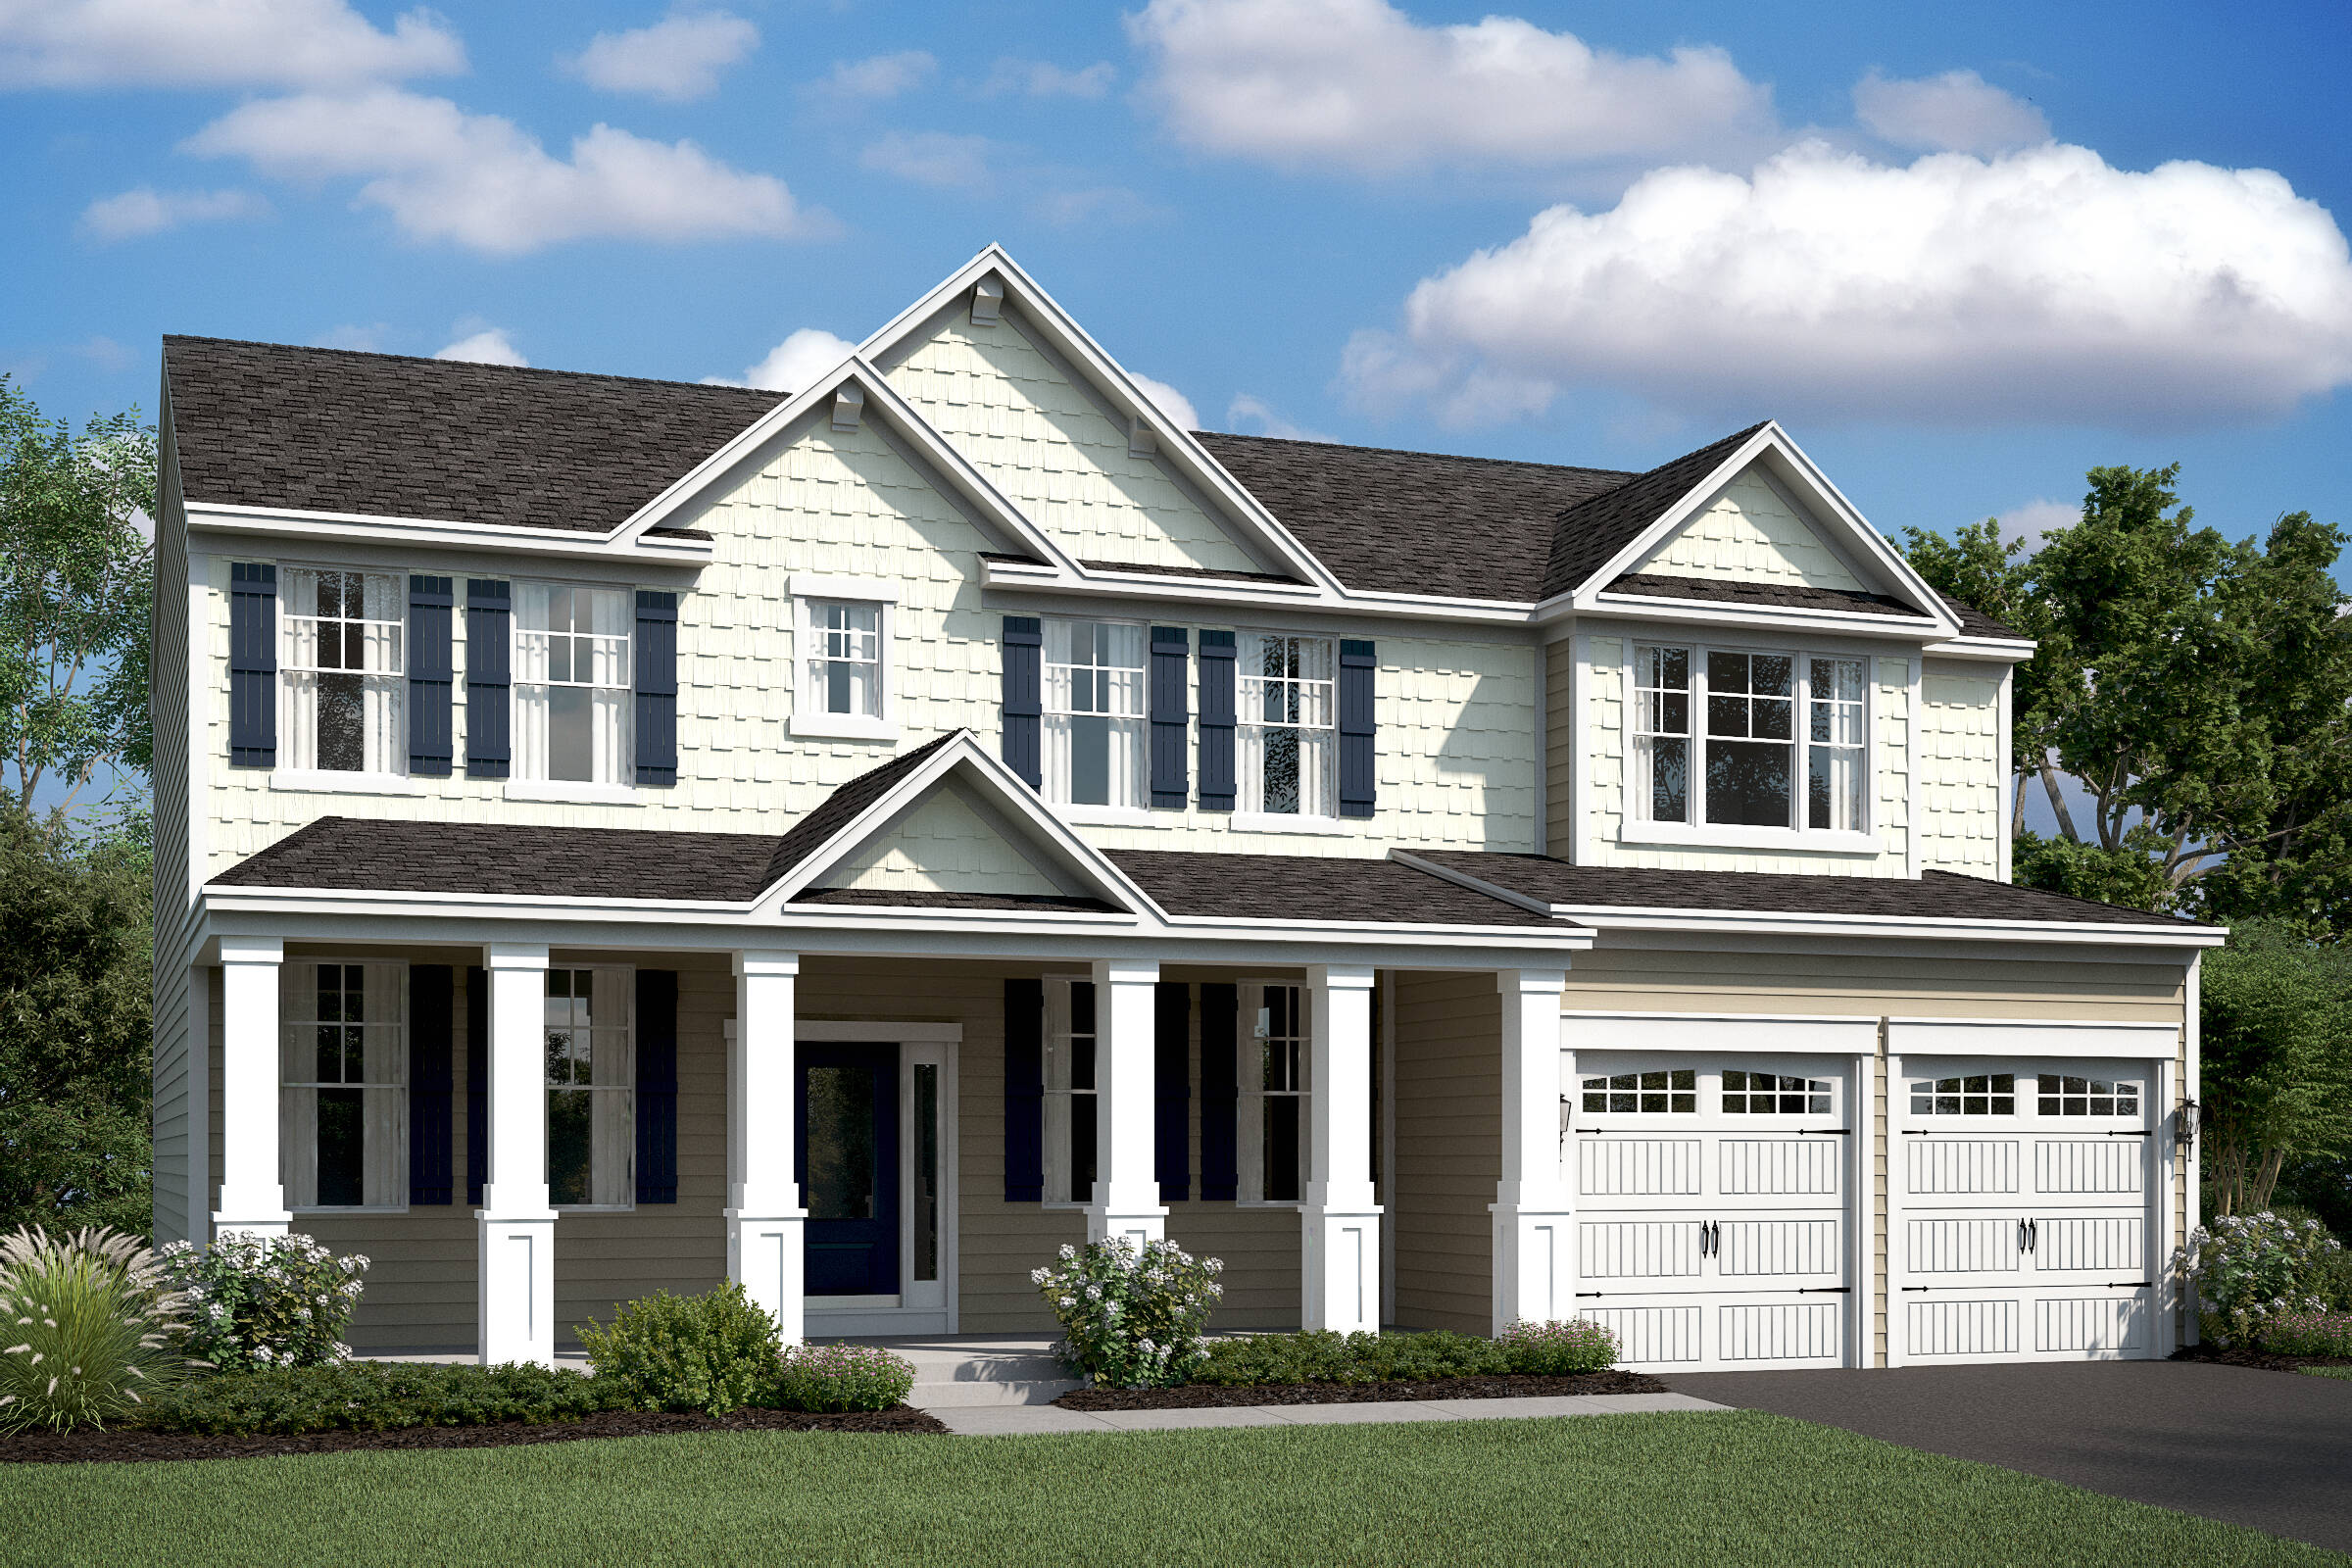 delaware d new homes at magness farms in maryland